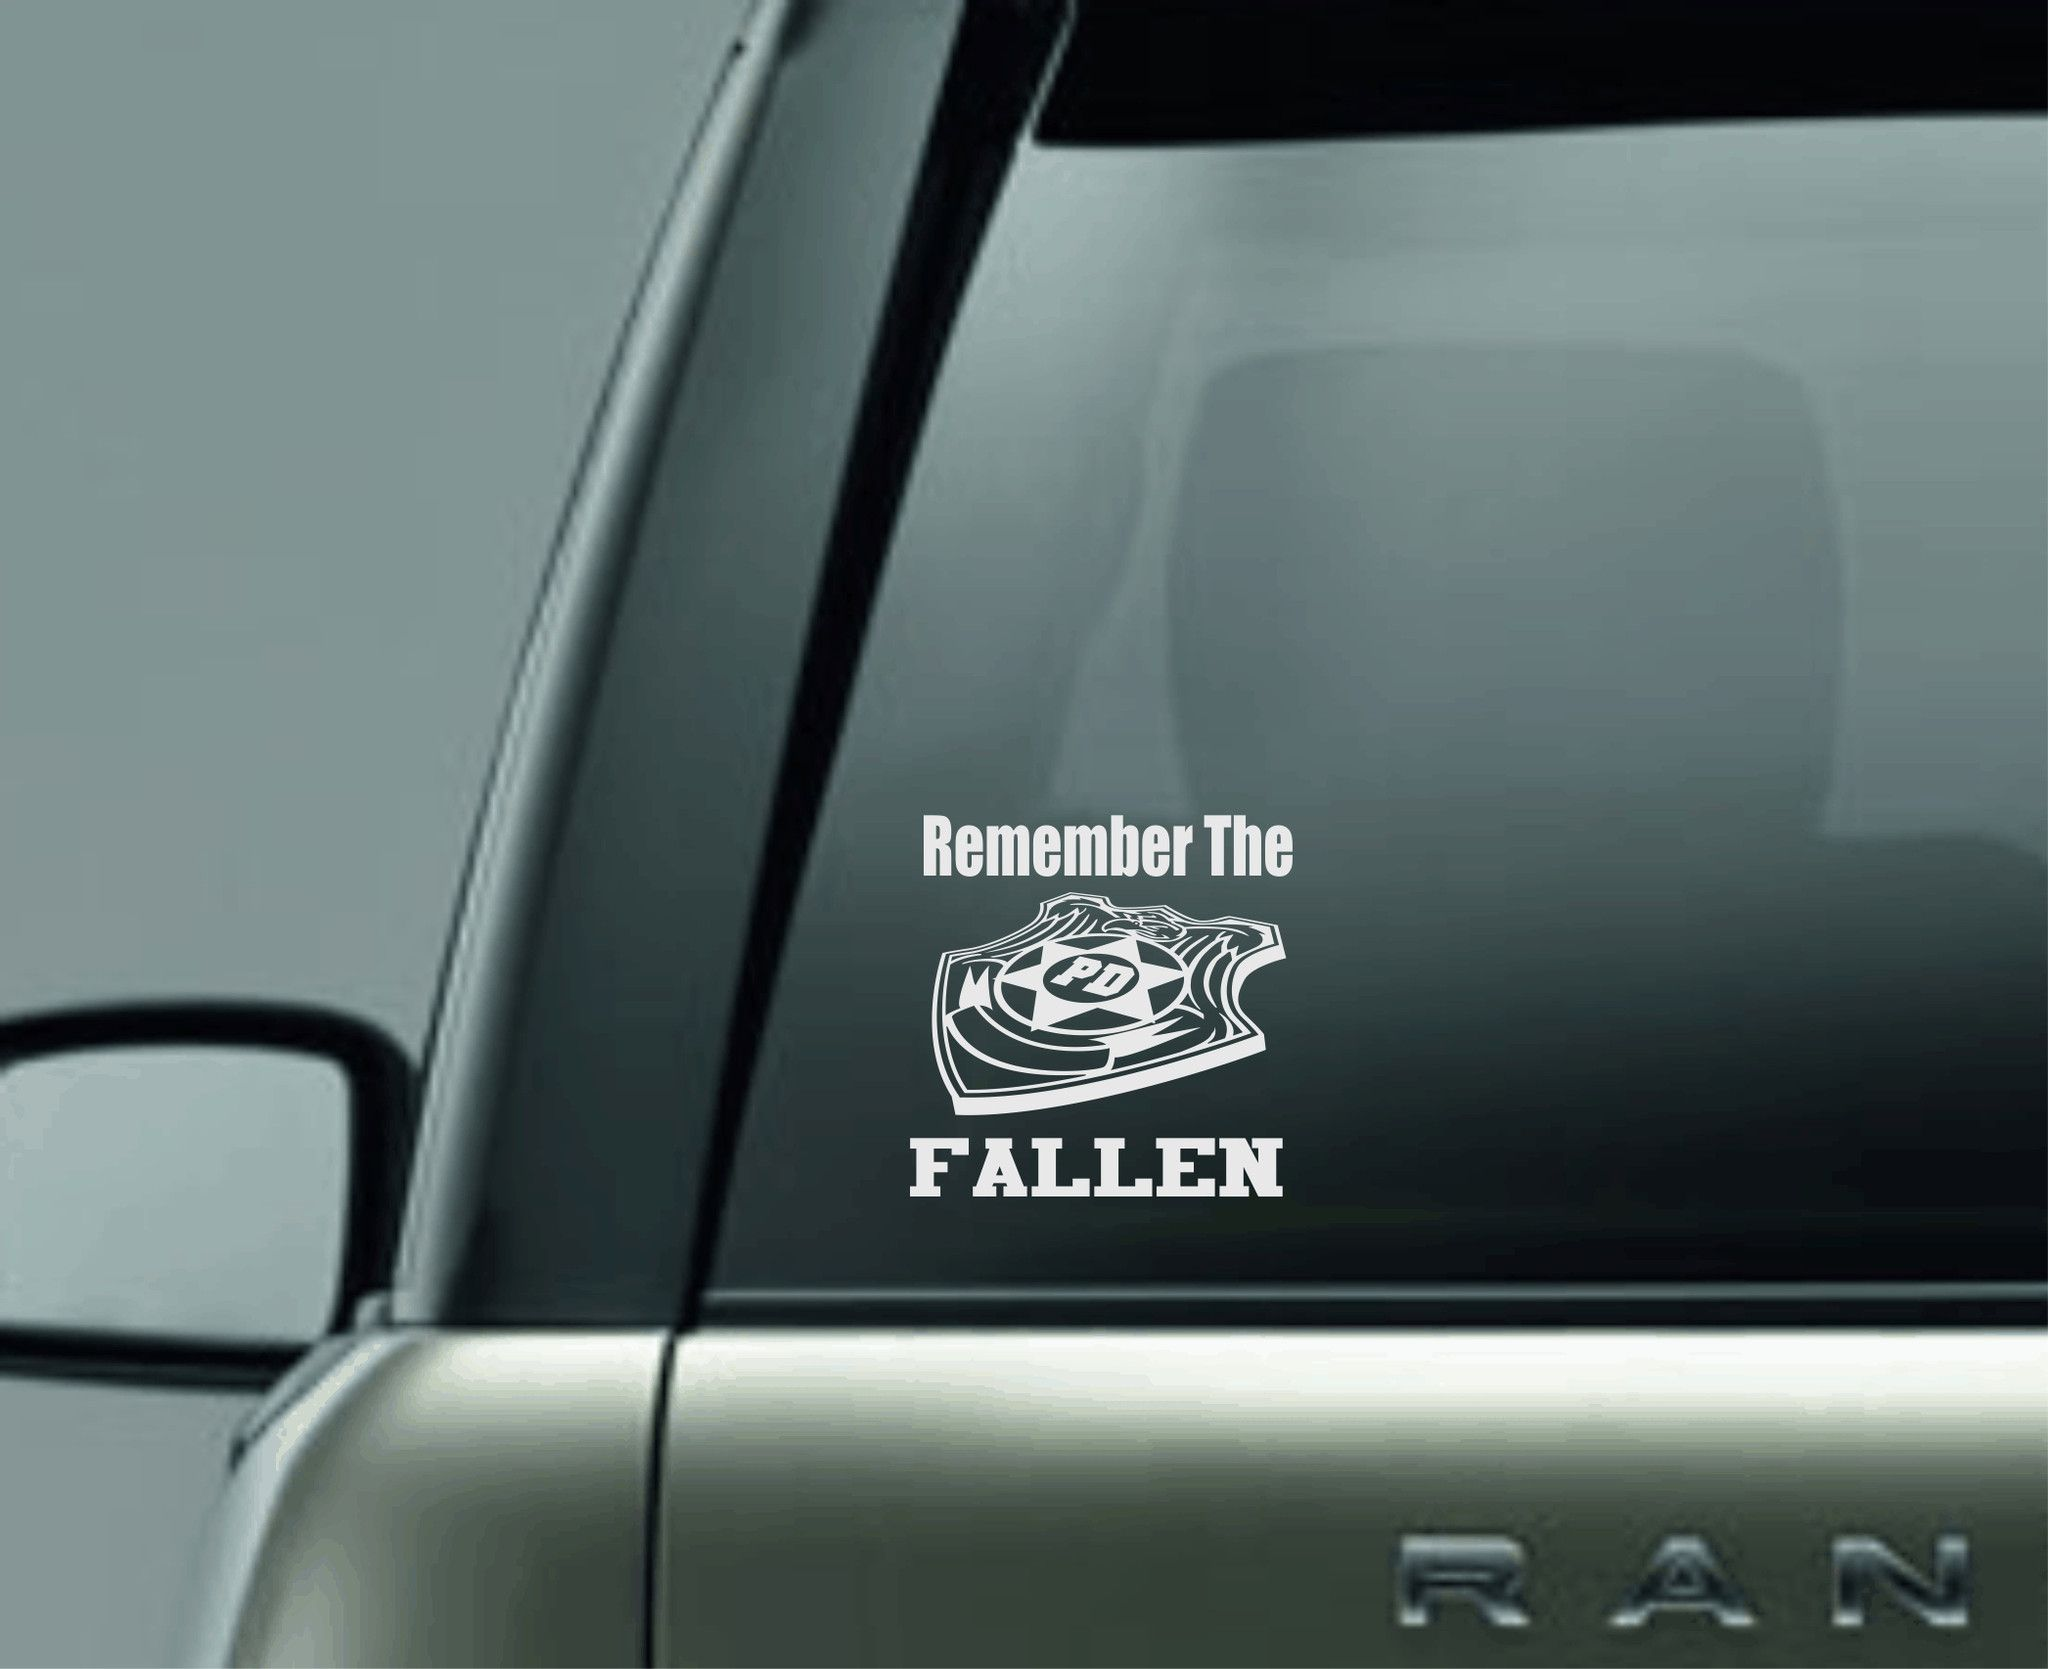 Remember The Fallen Police Car Decal Sticker Car Monogram Decal Car Decals Stickers Monogram Vinyl Decal [ 1669 x 2048 Pixel ]